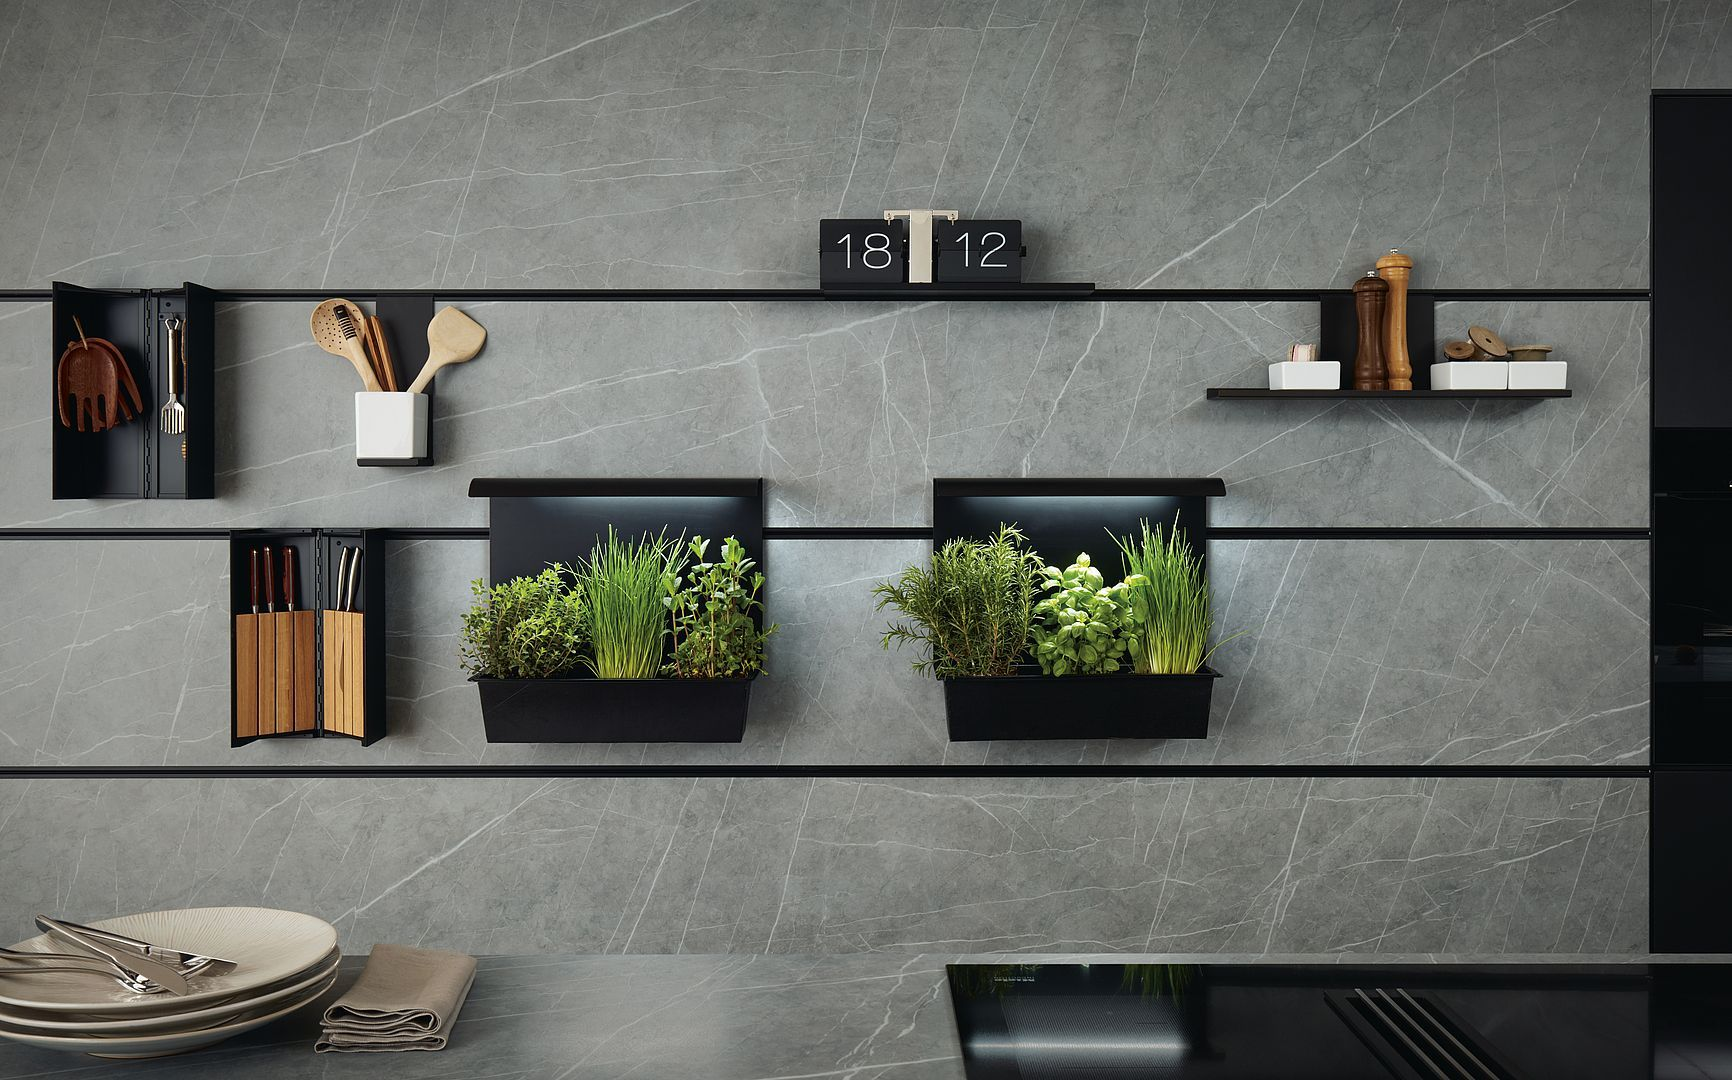 Next kitchen recessed panel hanging system kitchen features